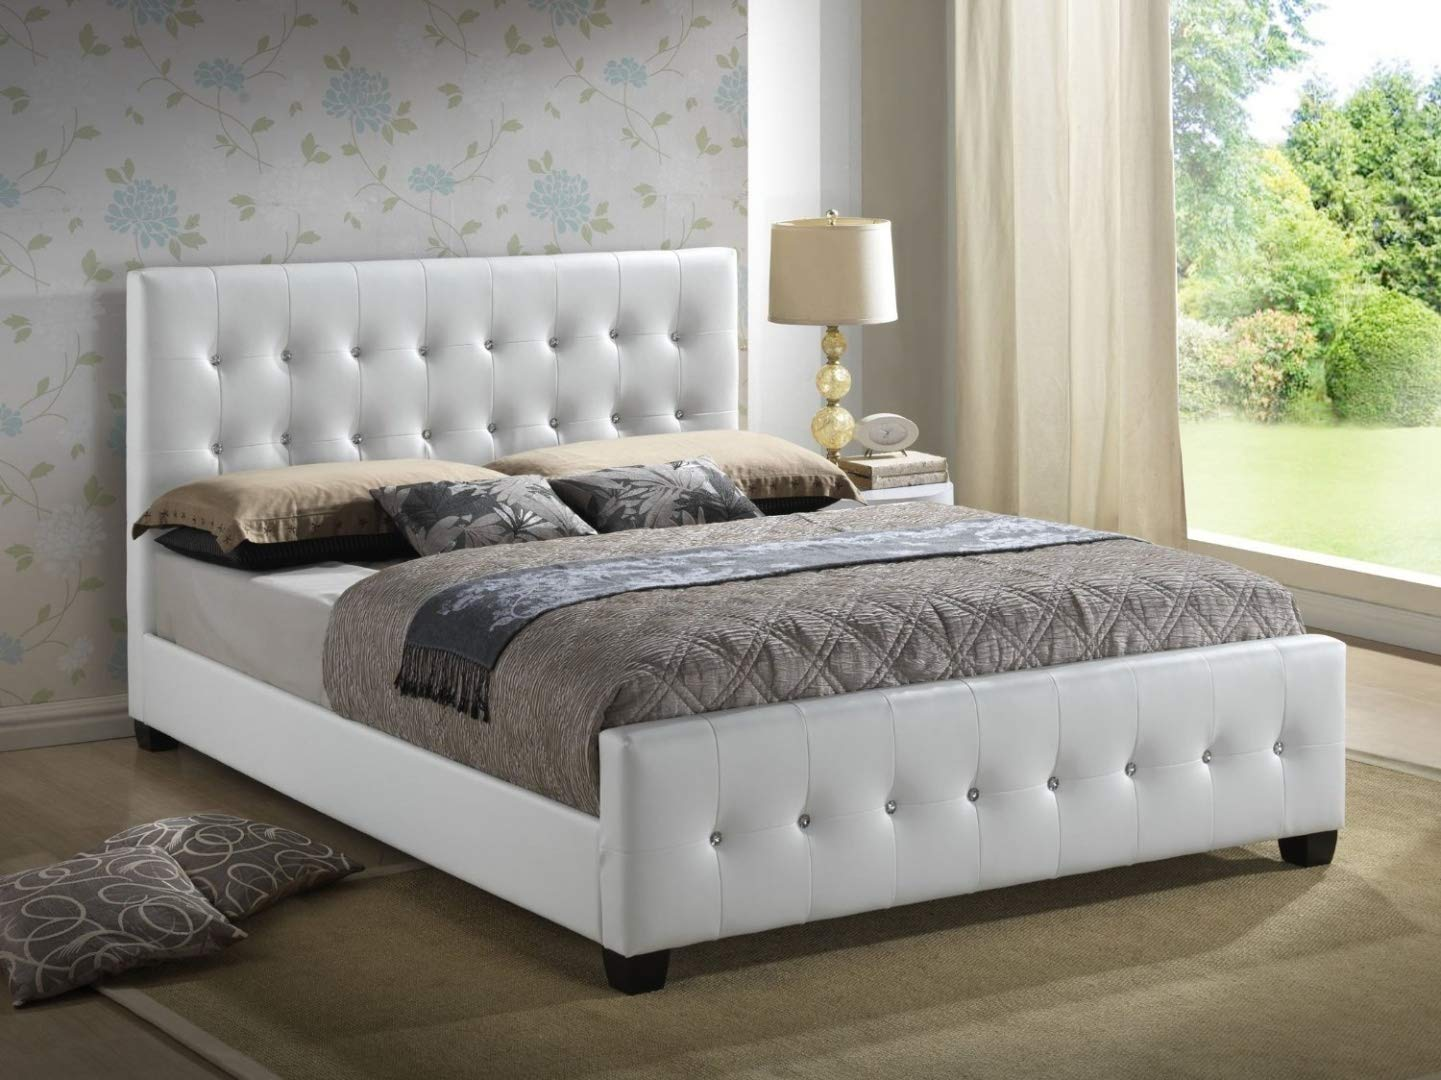 Queen Size Bed.Glory Furniture White Queen Size Modern Headboard Tufted Leather Look Upholstered Bed